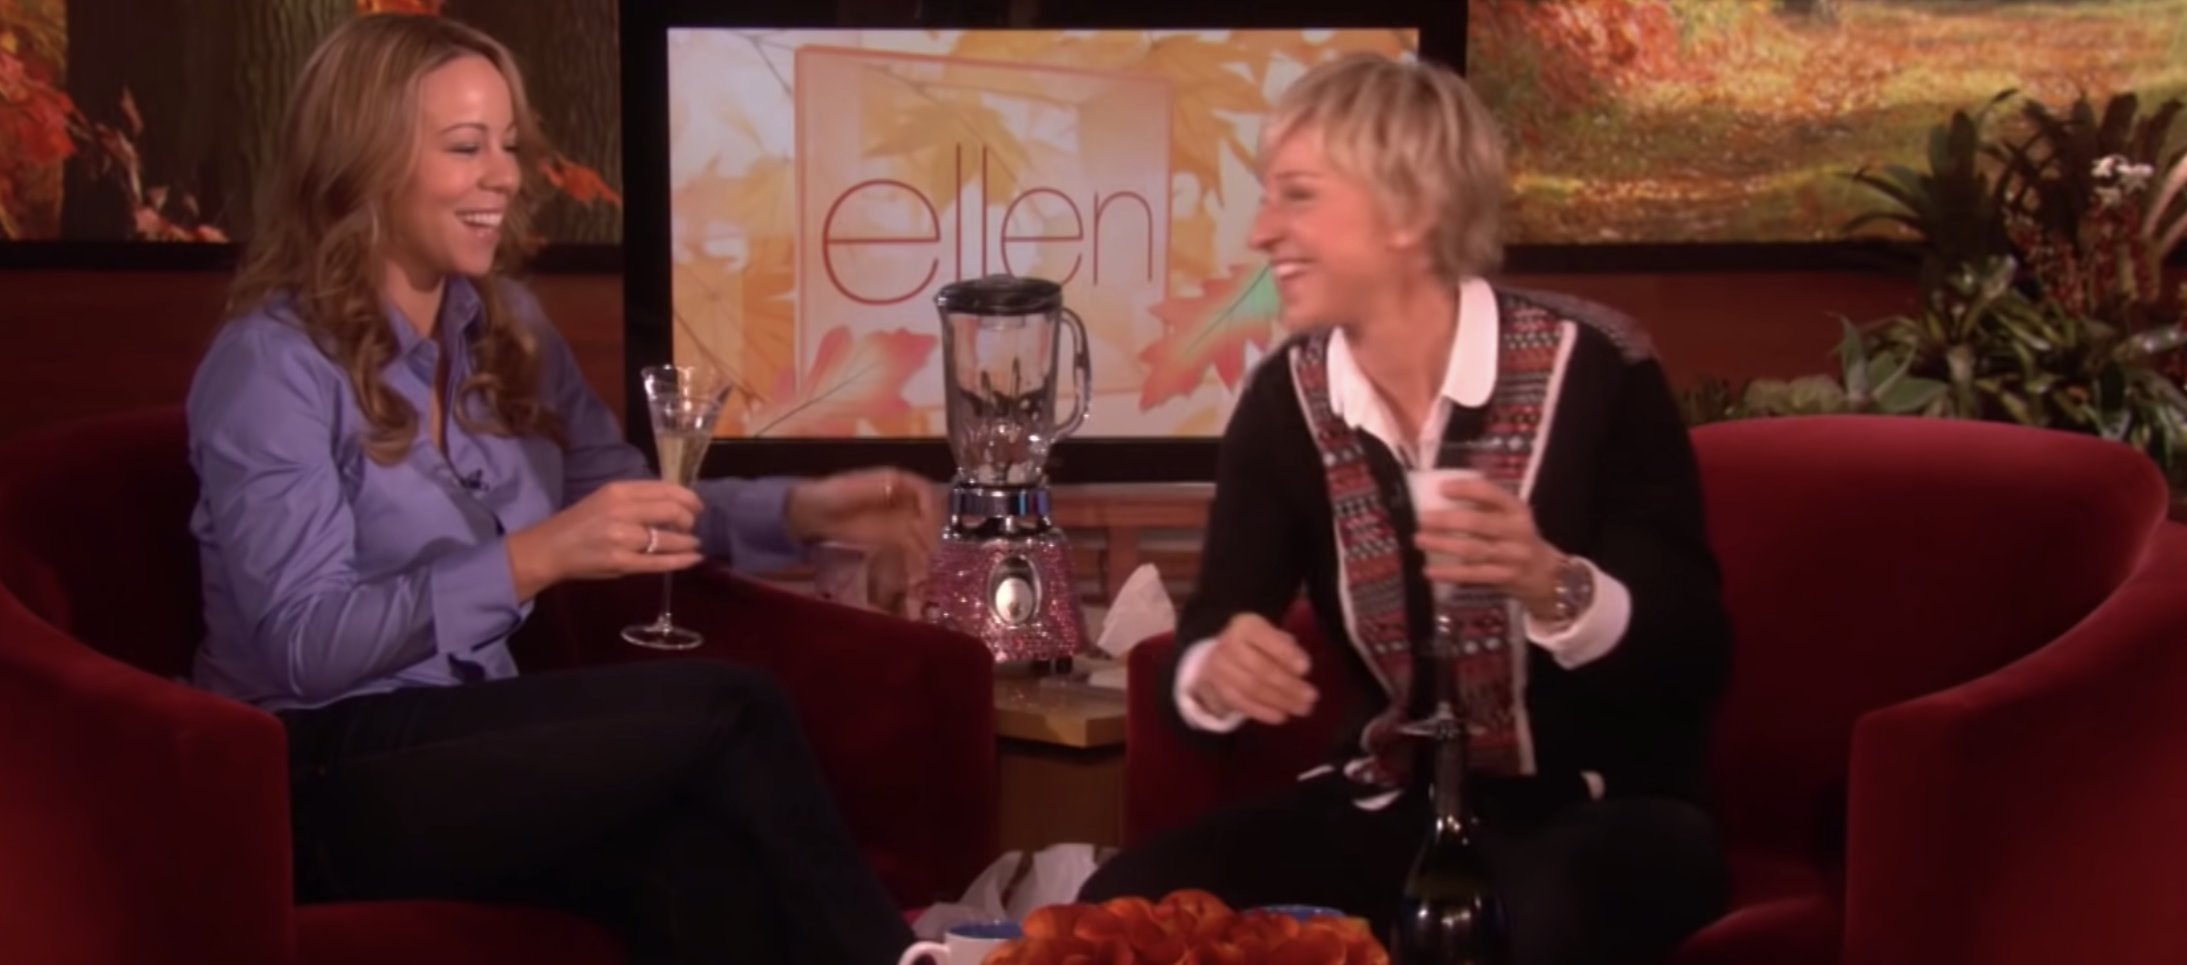 Mariah Carey appearing on The Ellen Show